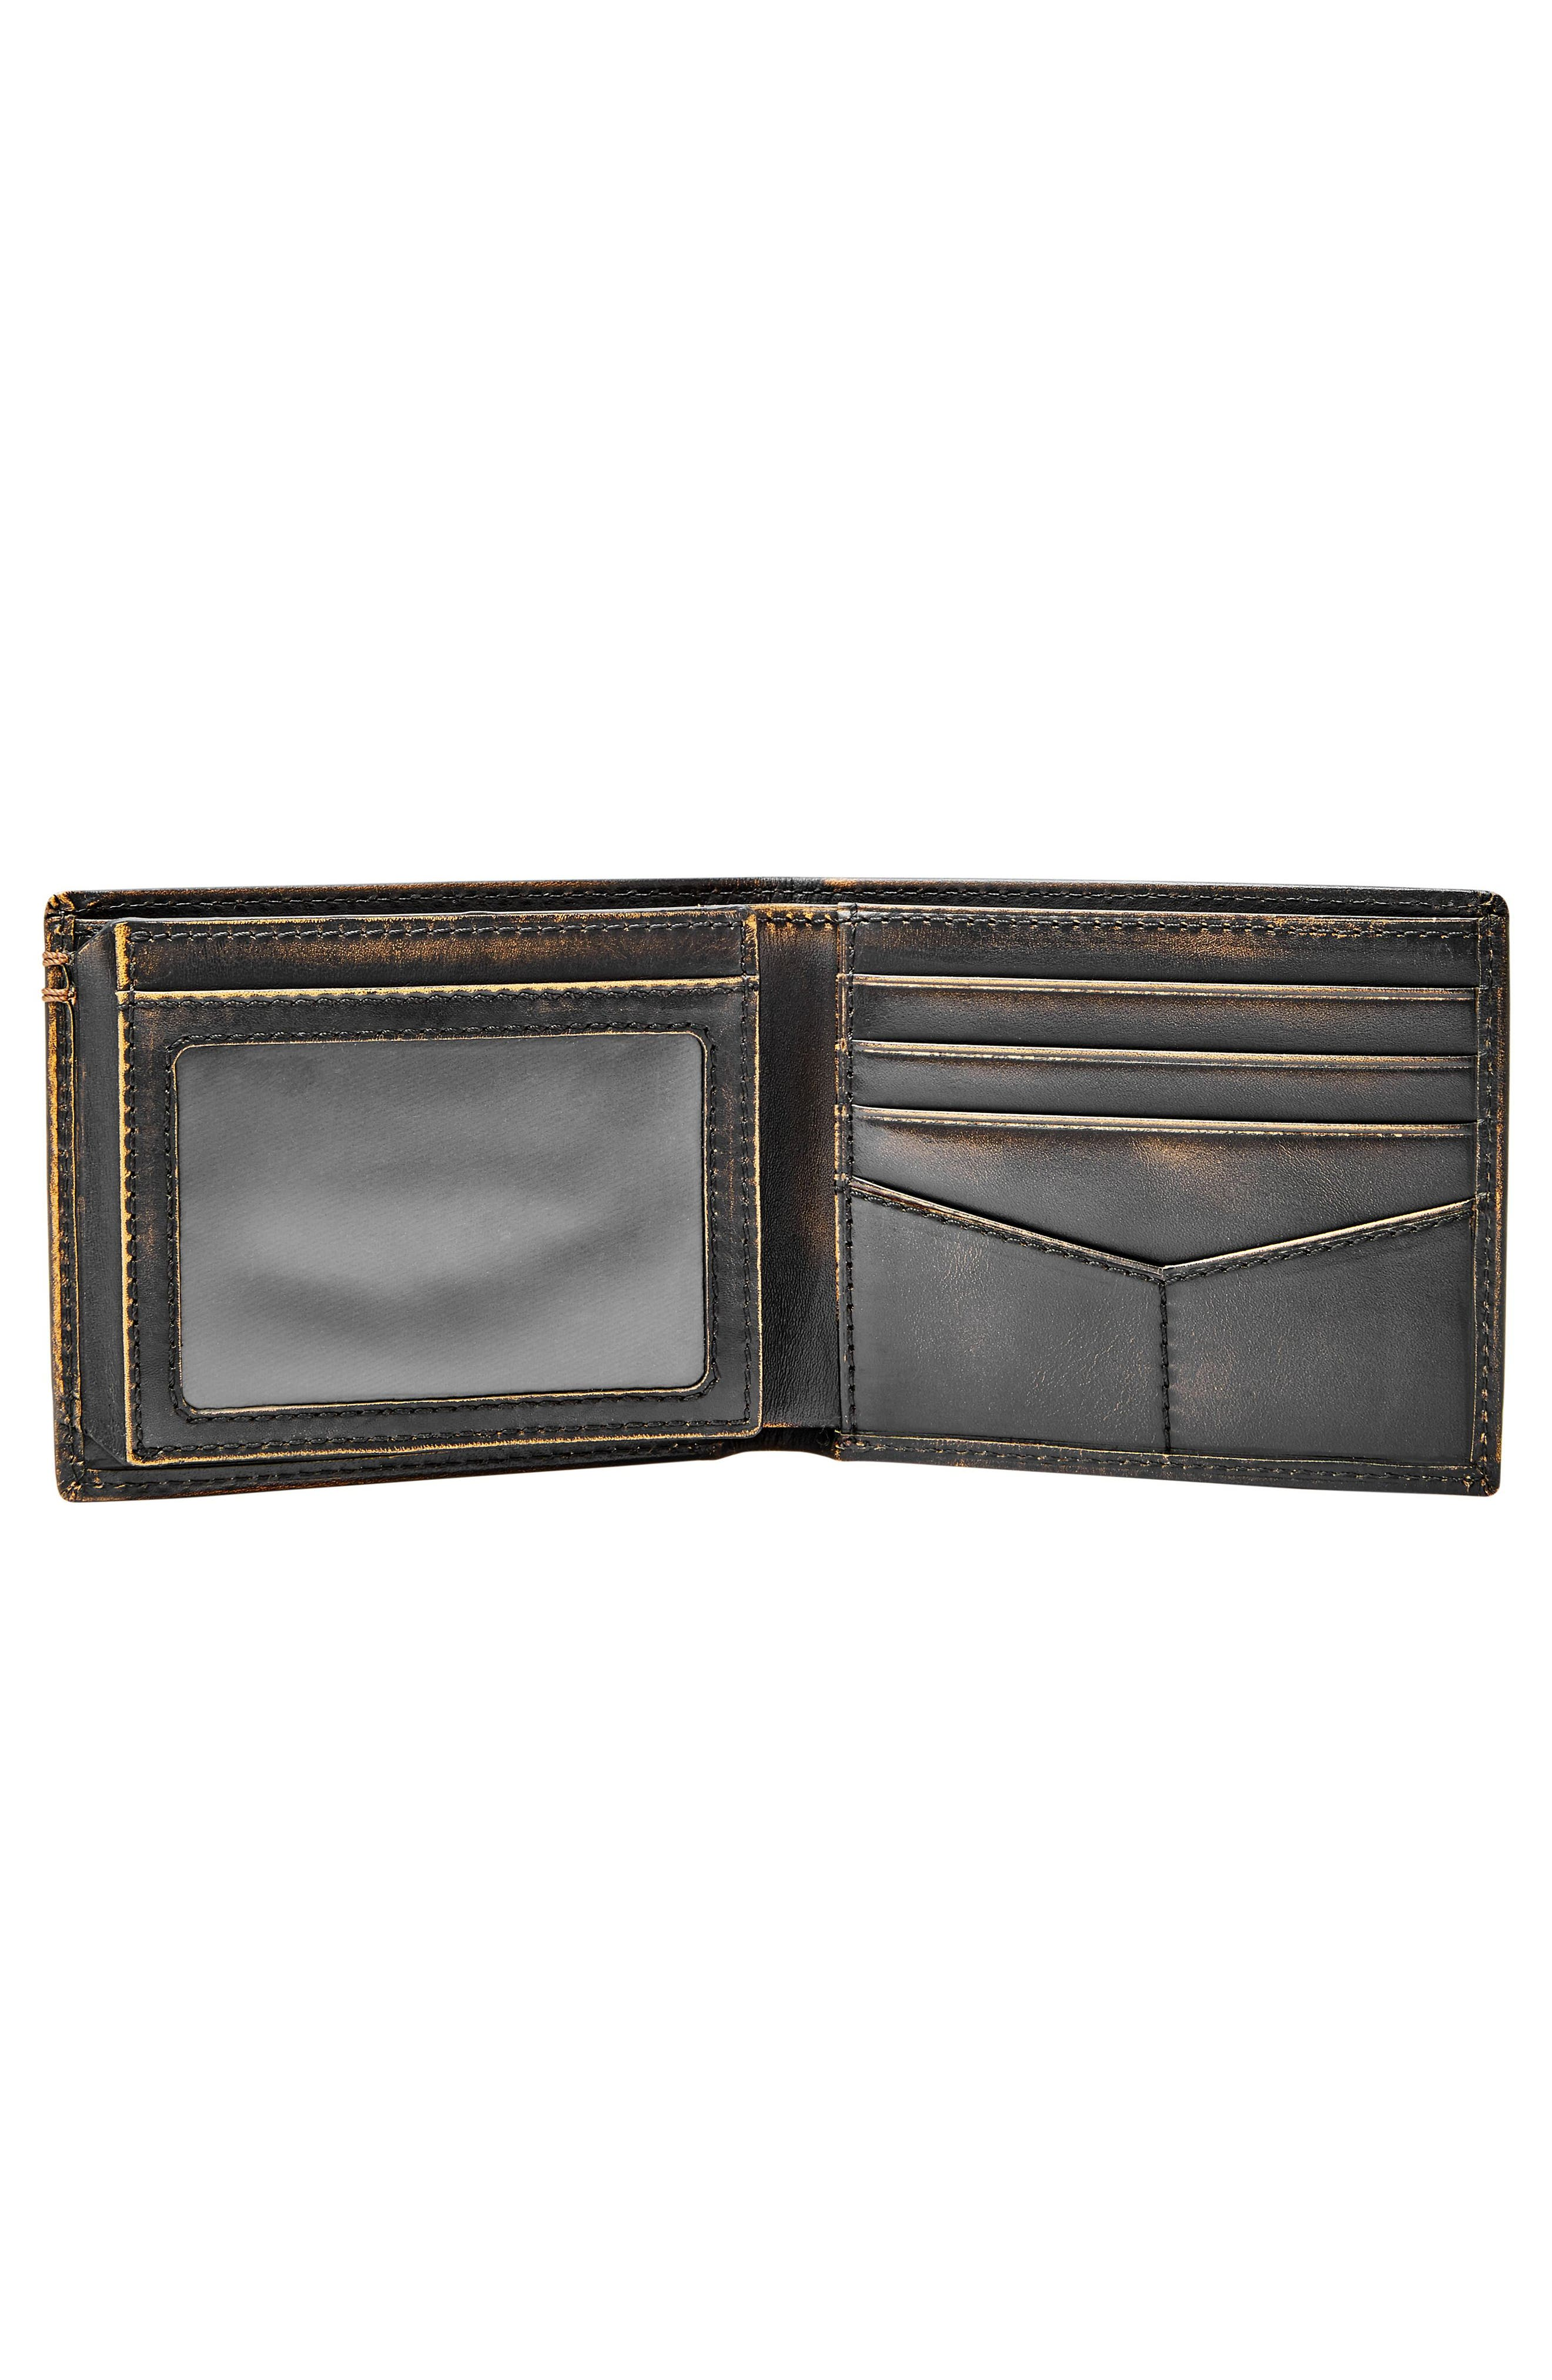 FOSSIL, Wade Leather Wallet, Alternate thumbnail 2, color, BLACK